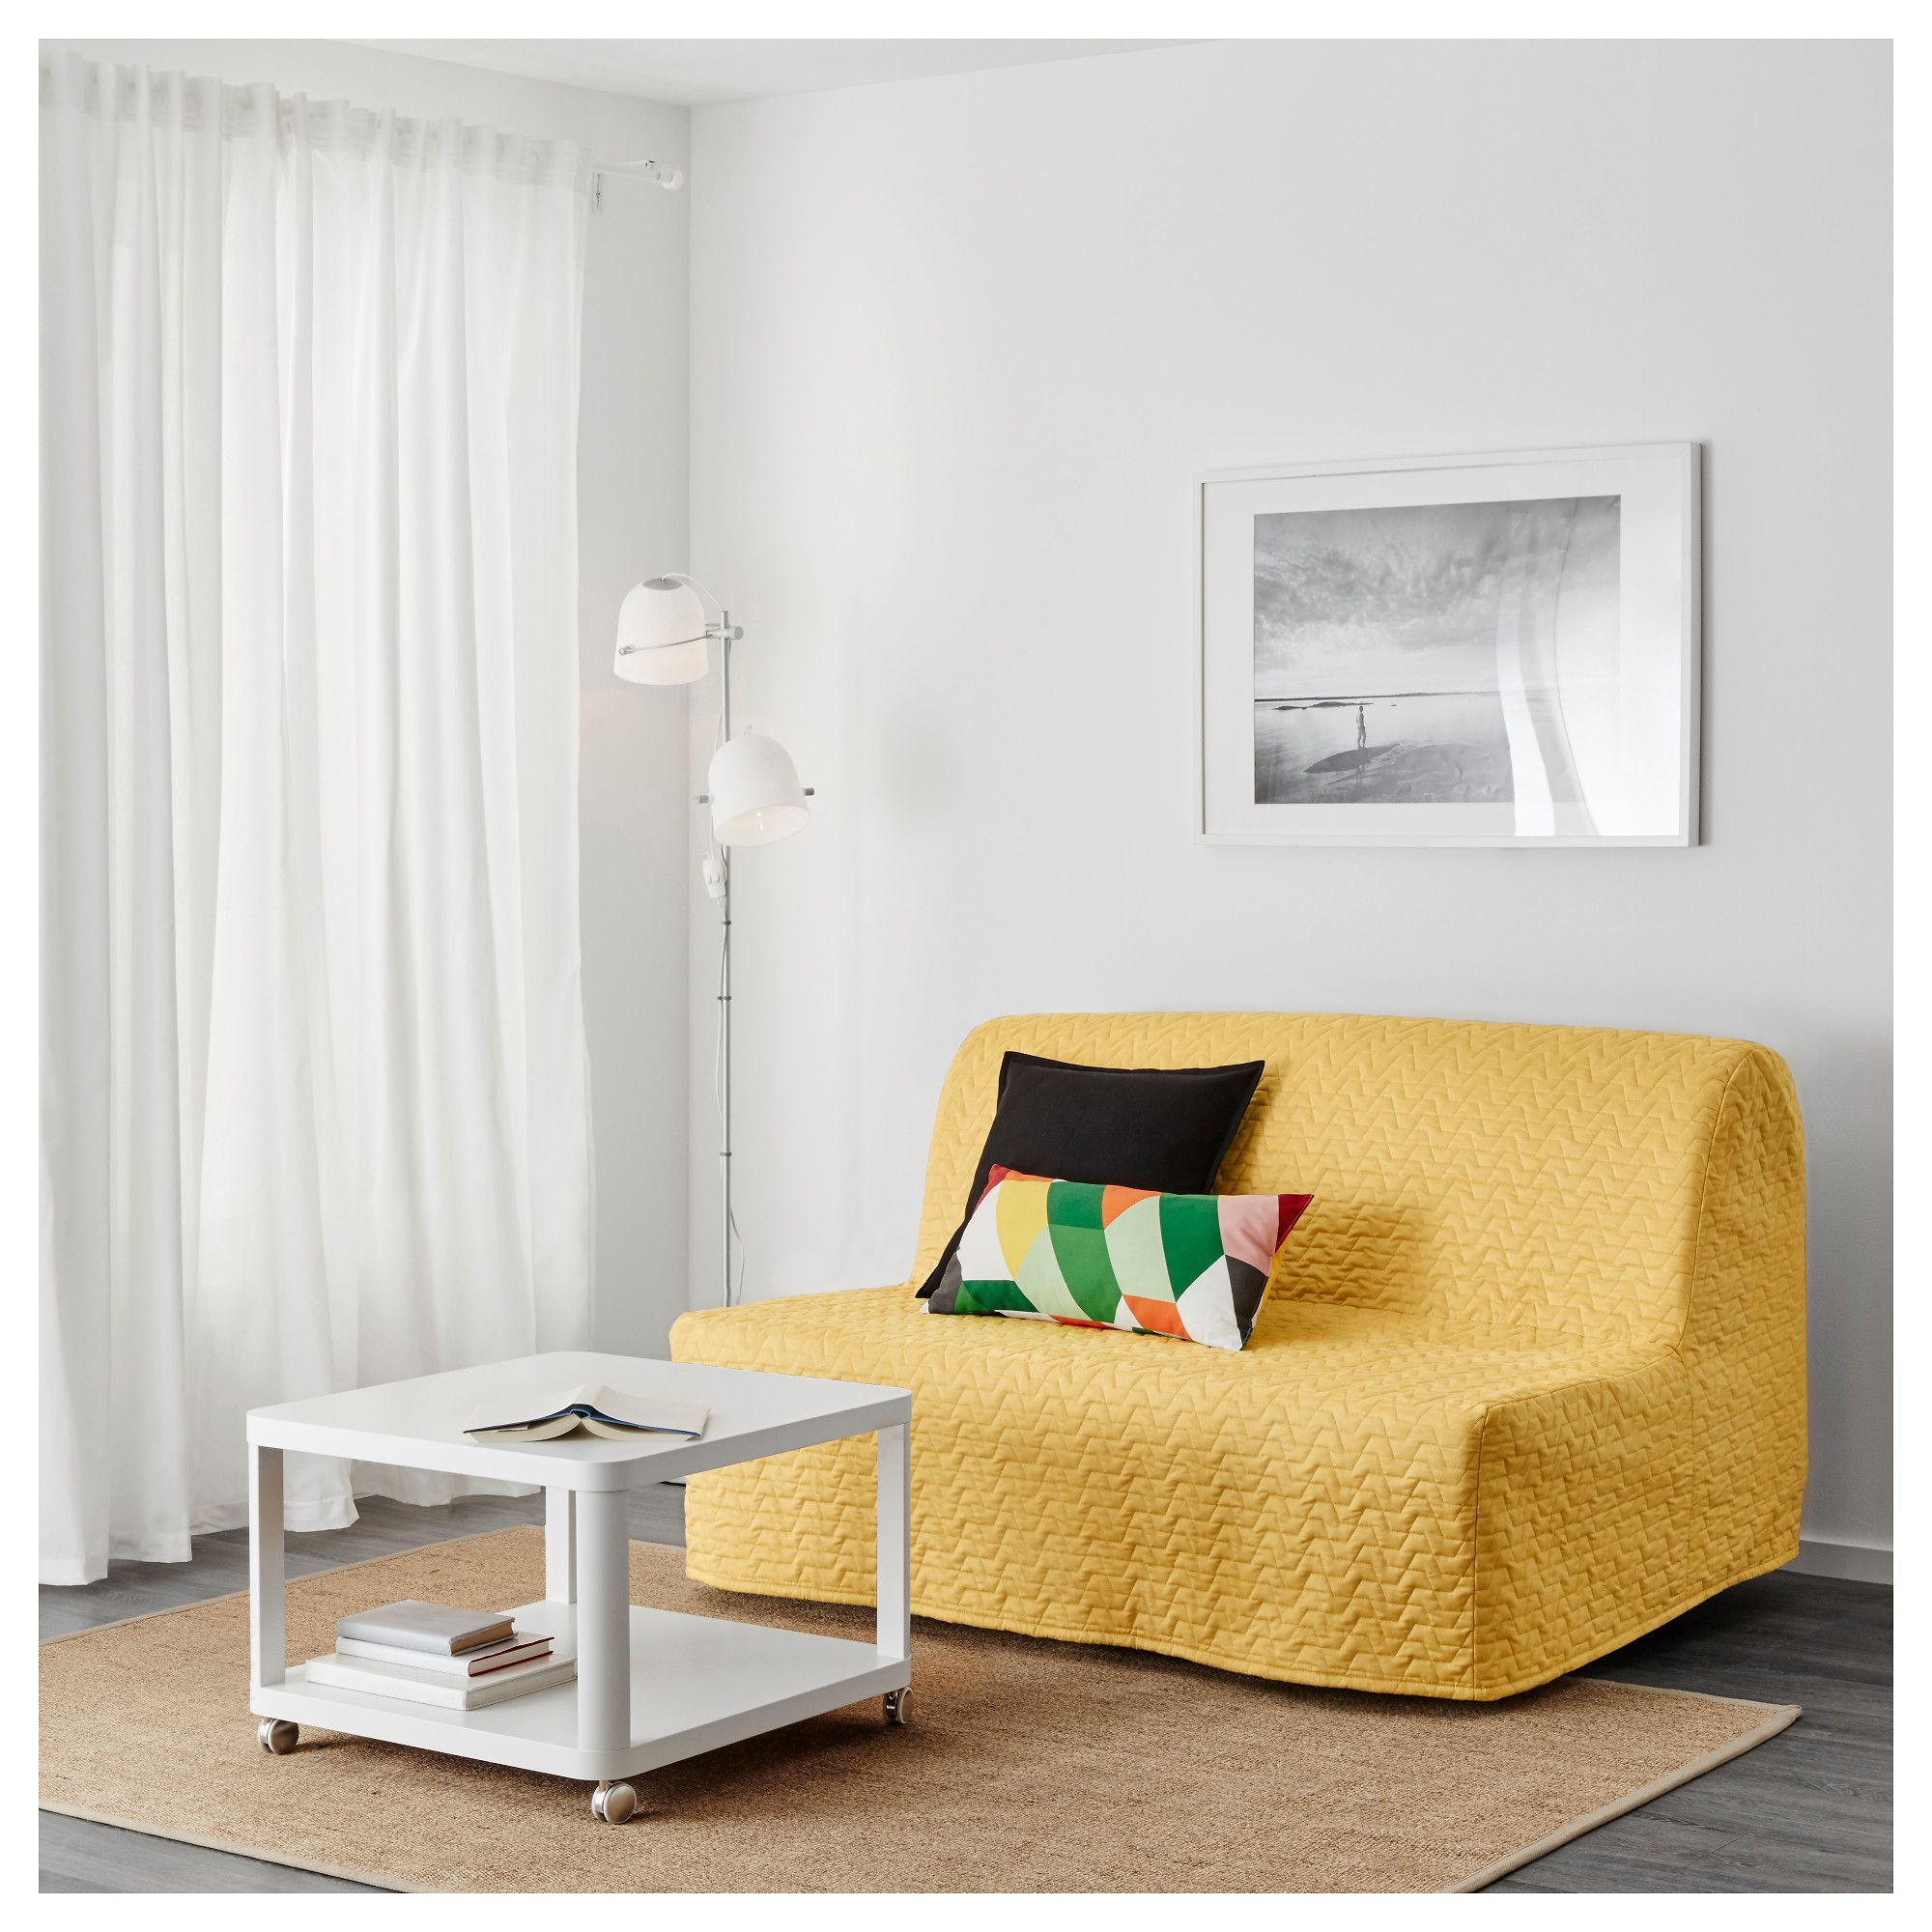 Kivik Sofa Pdf Furniture And Home Furnishings Sofa Bed Ikea Sofa Bed Sofa